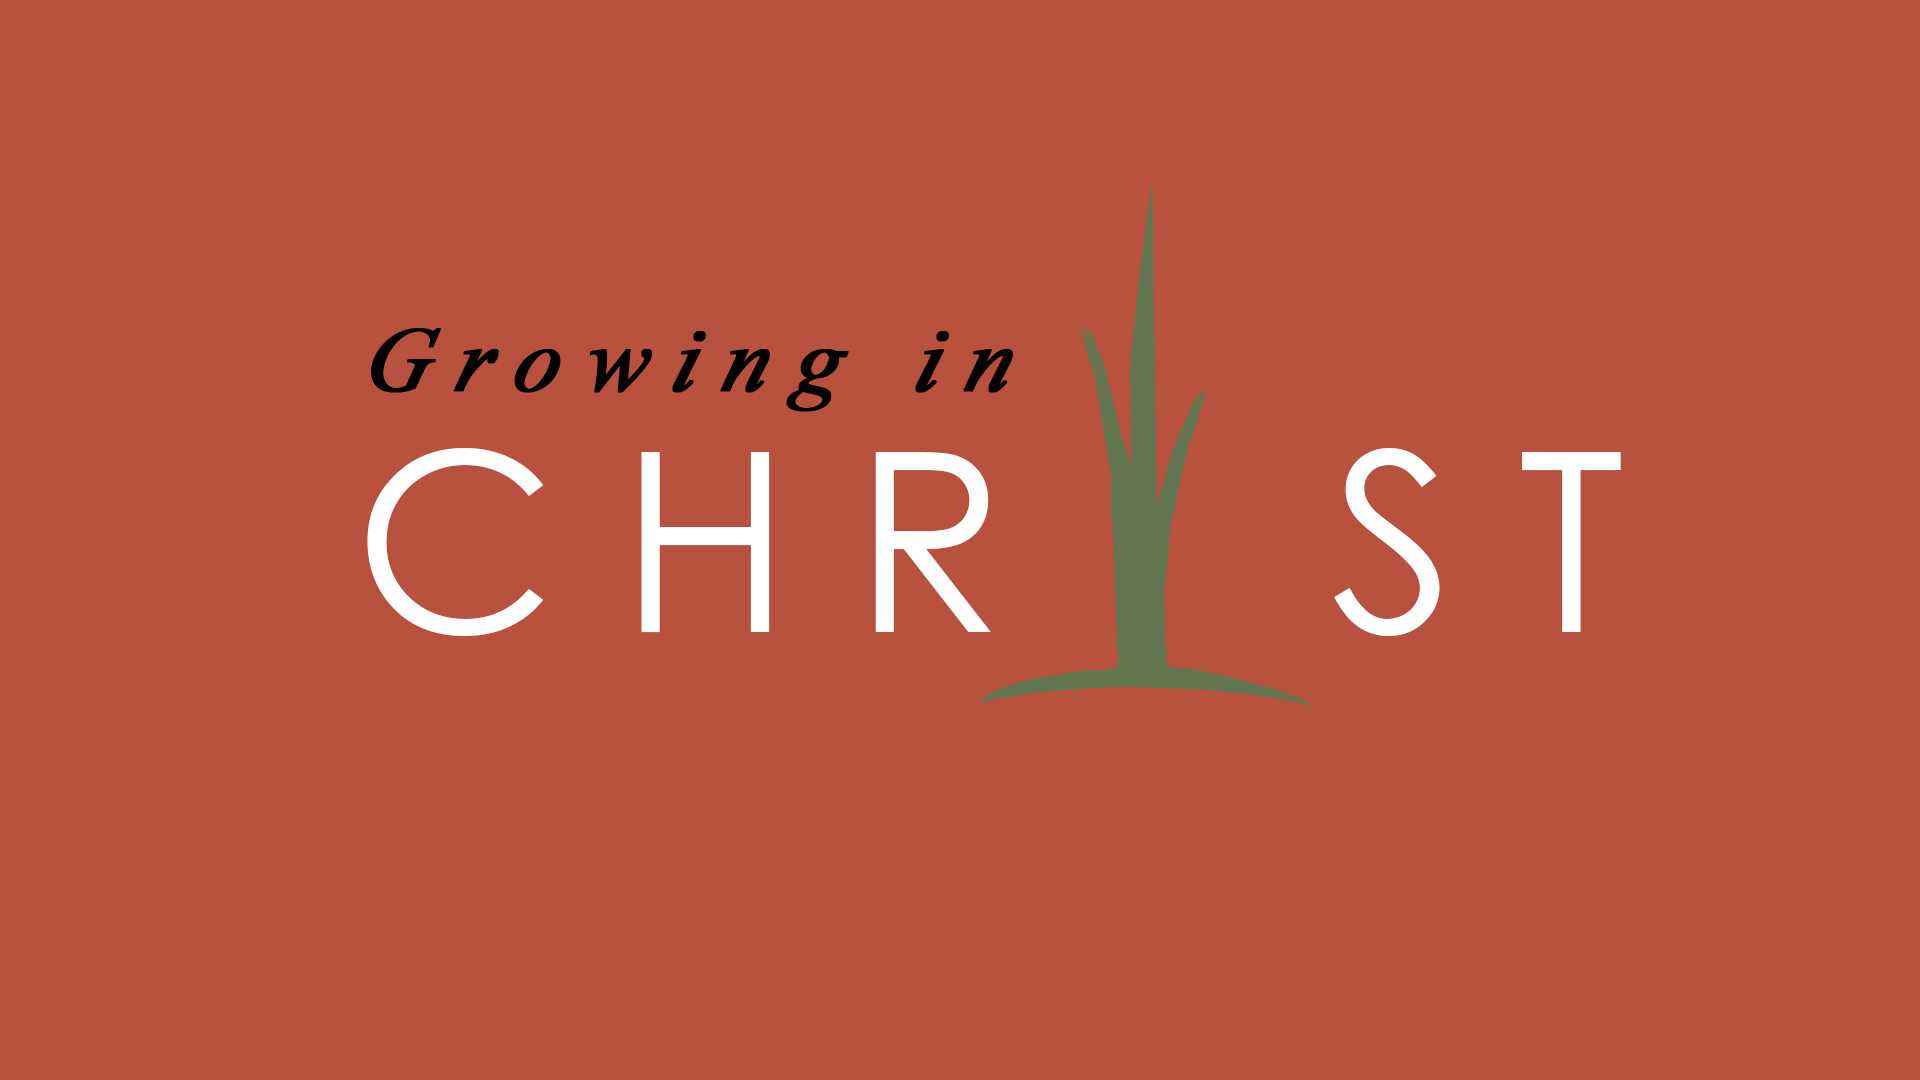 abf growing in christ clearwater community church